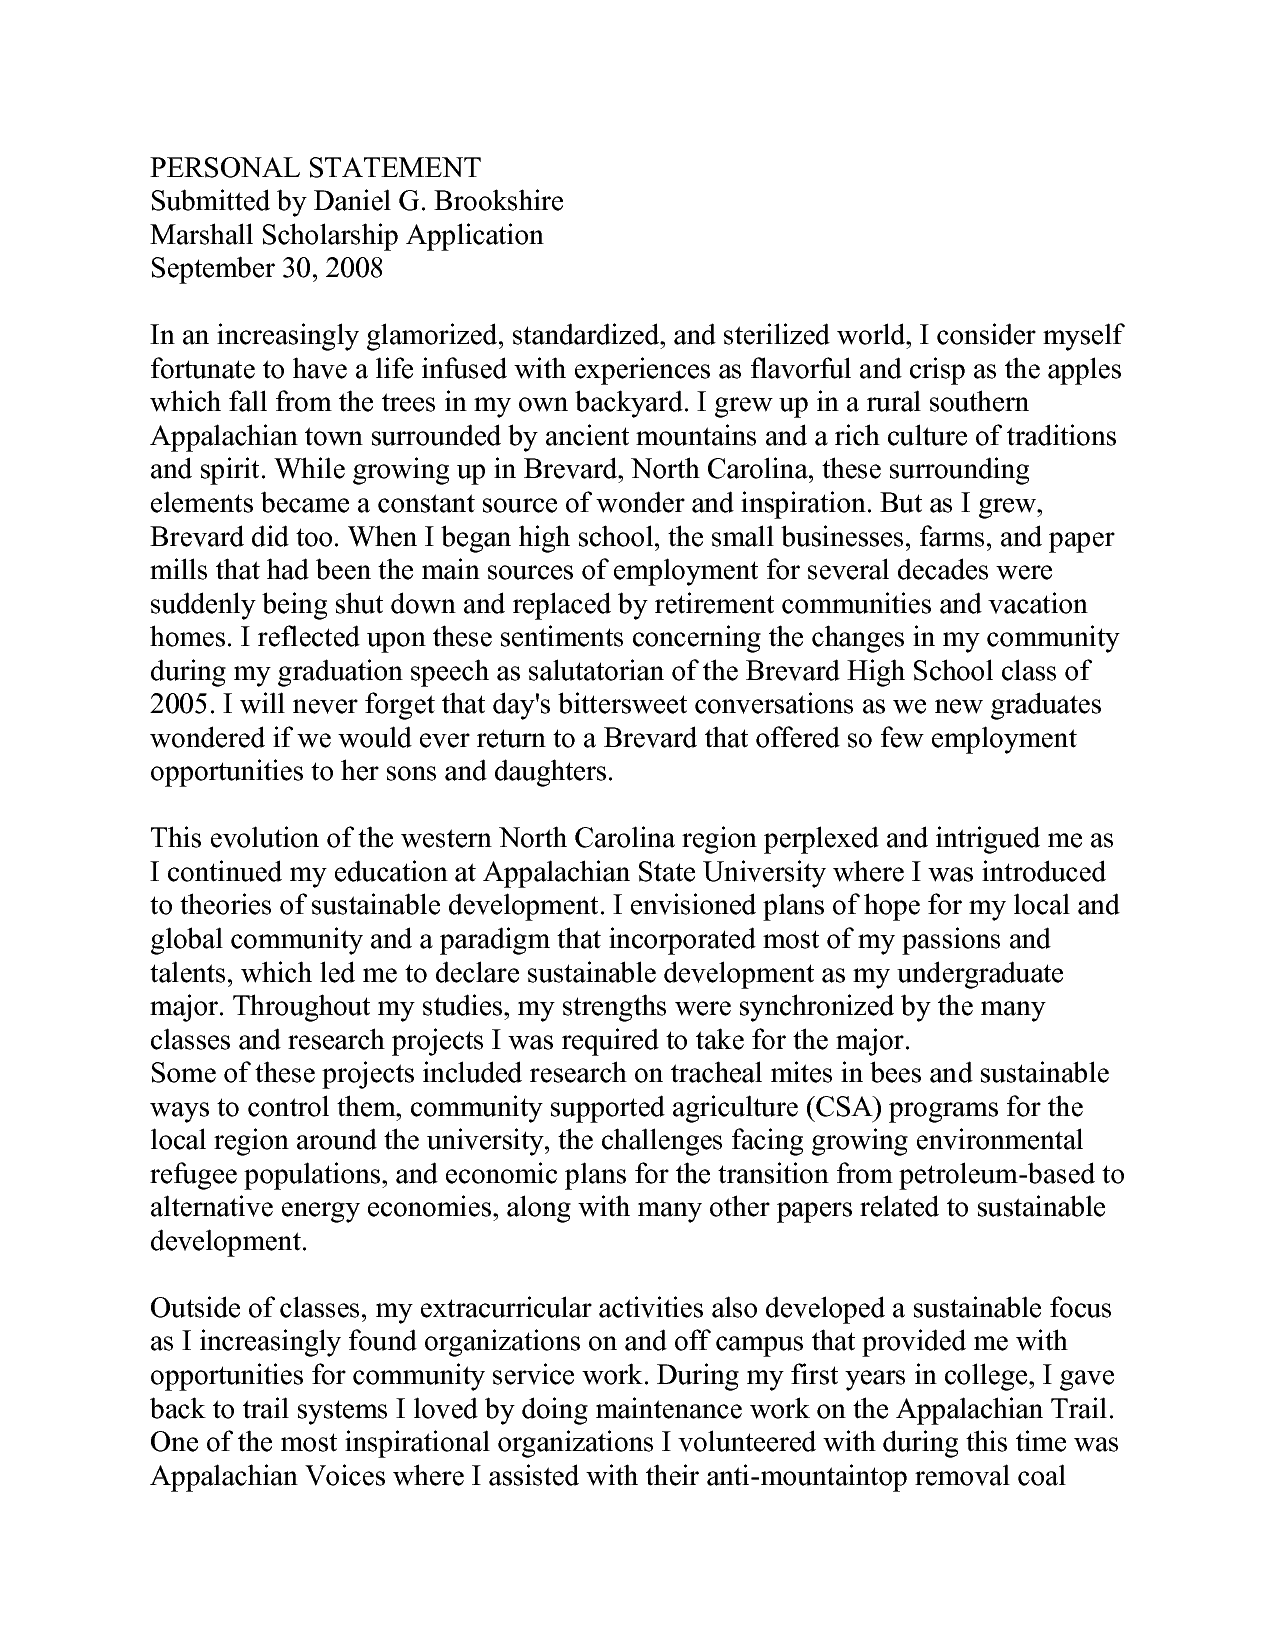 003 College Personal Statement Essays Marvelous Essay Examples Full